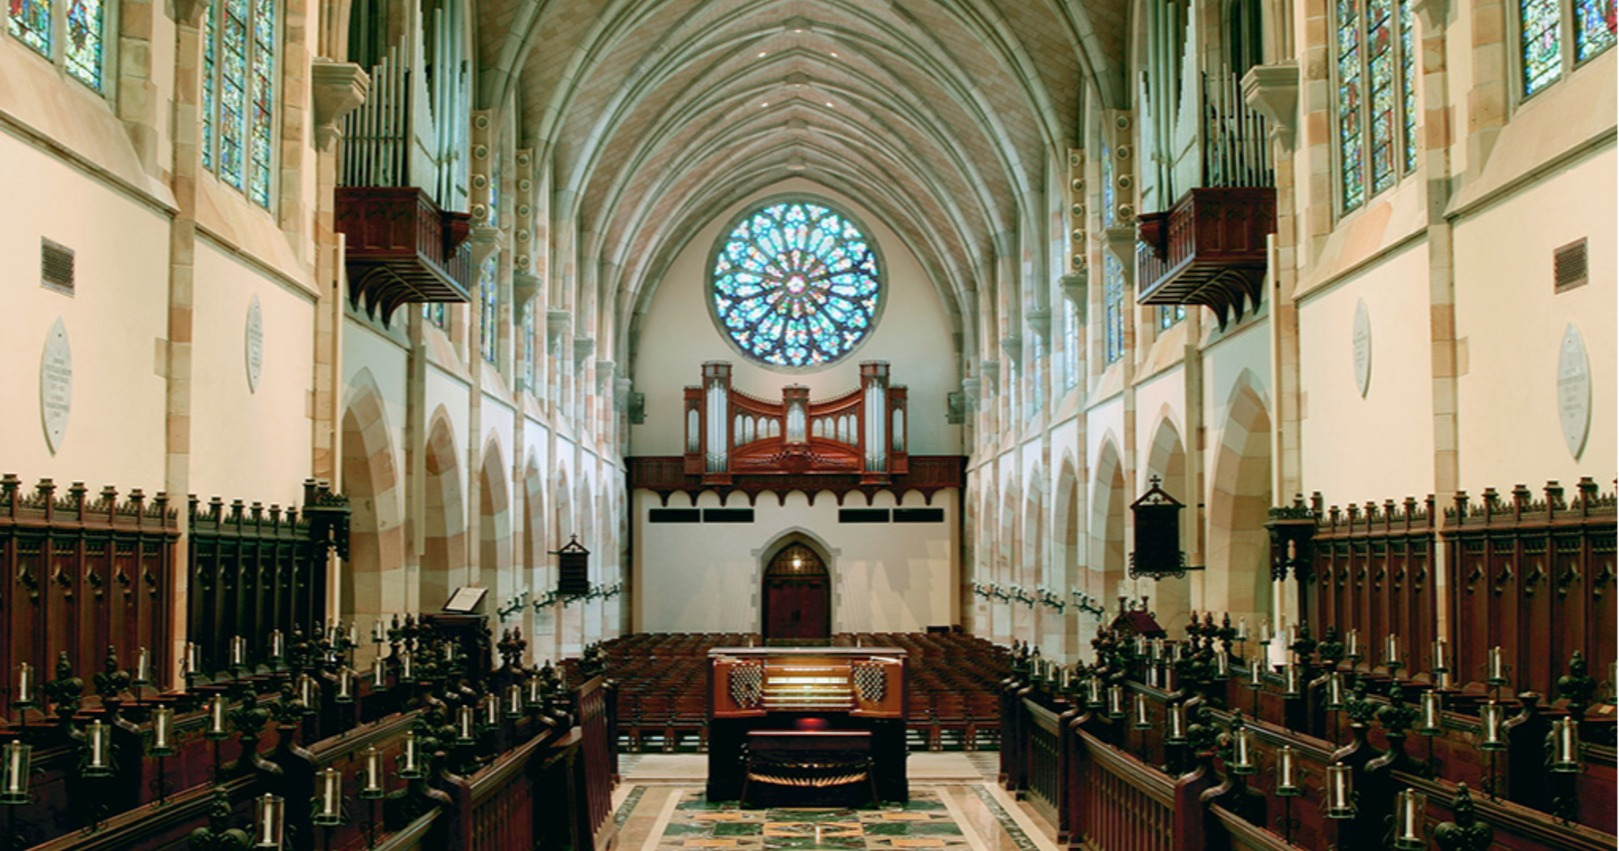 The University of the South - All Saints' Chapel